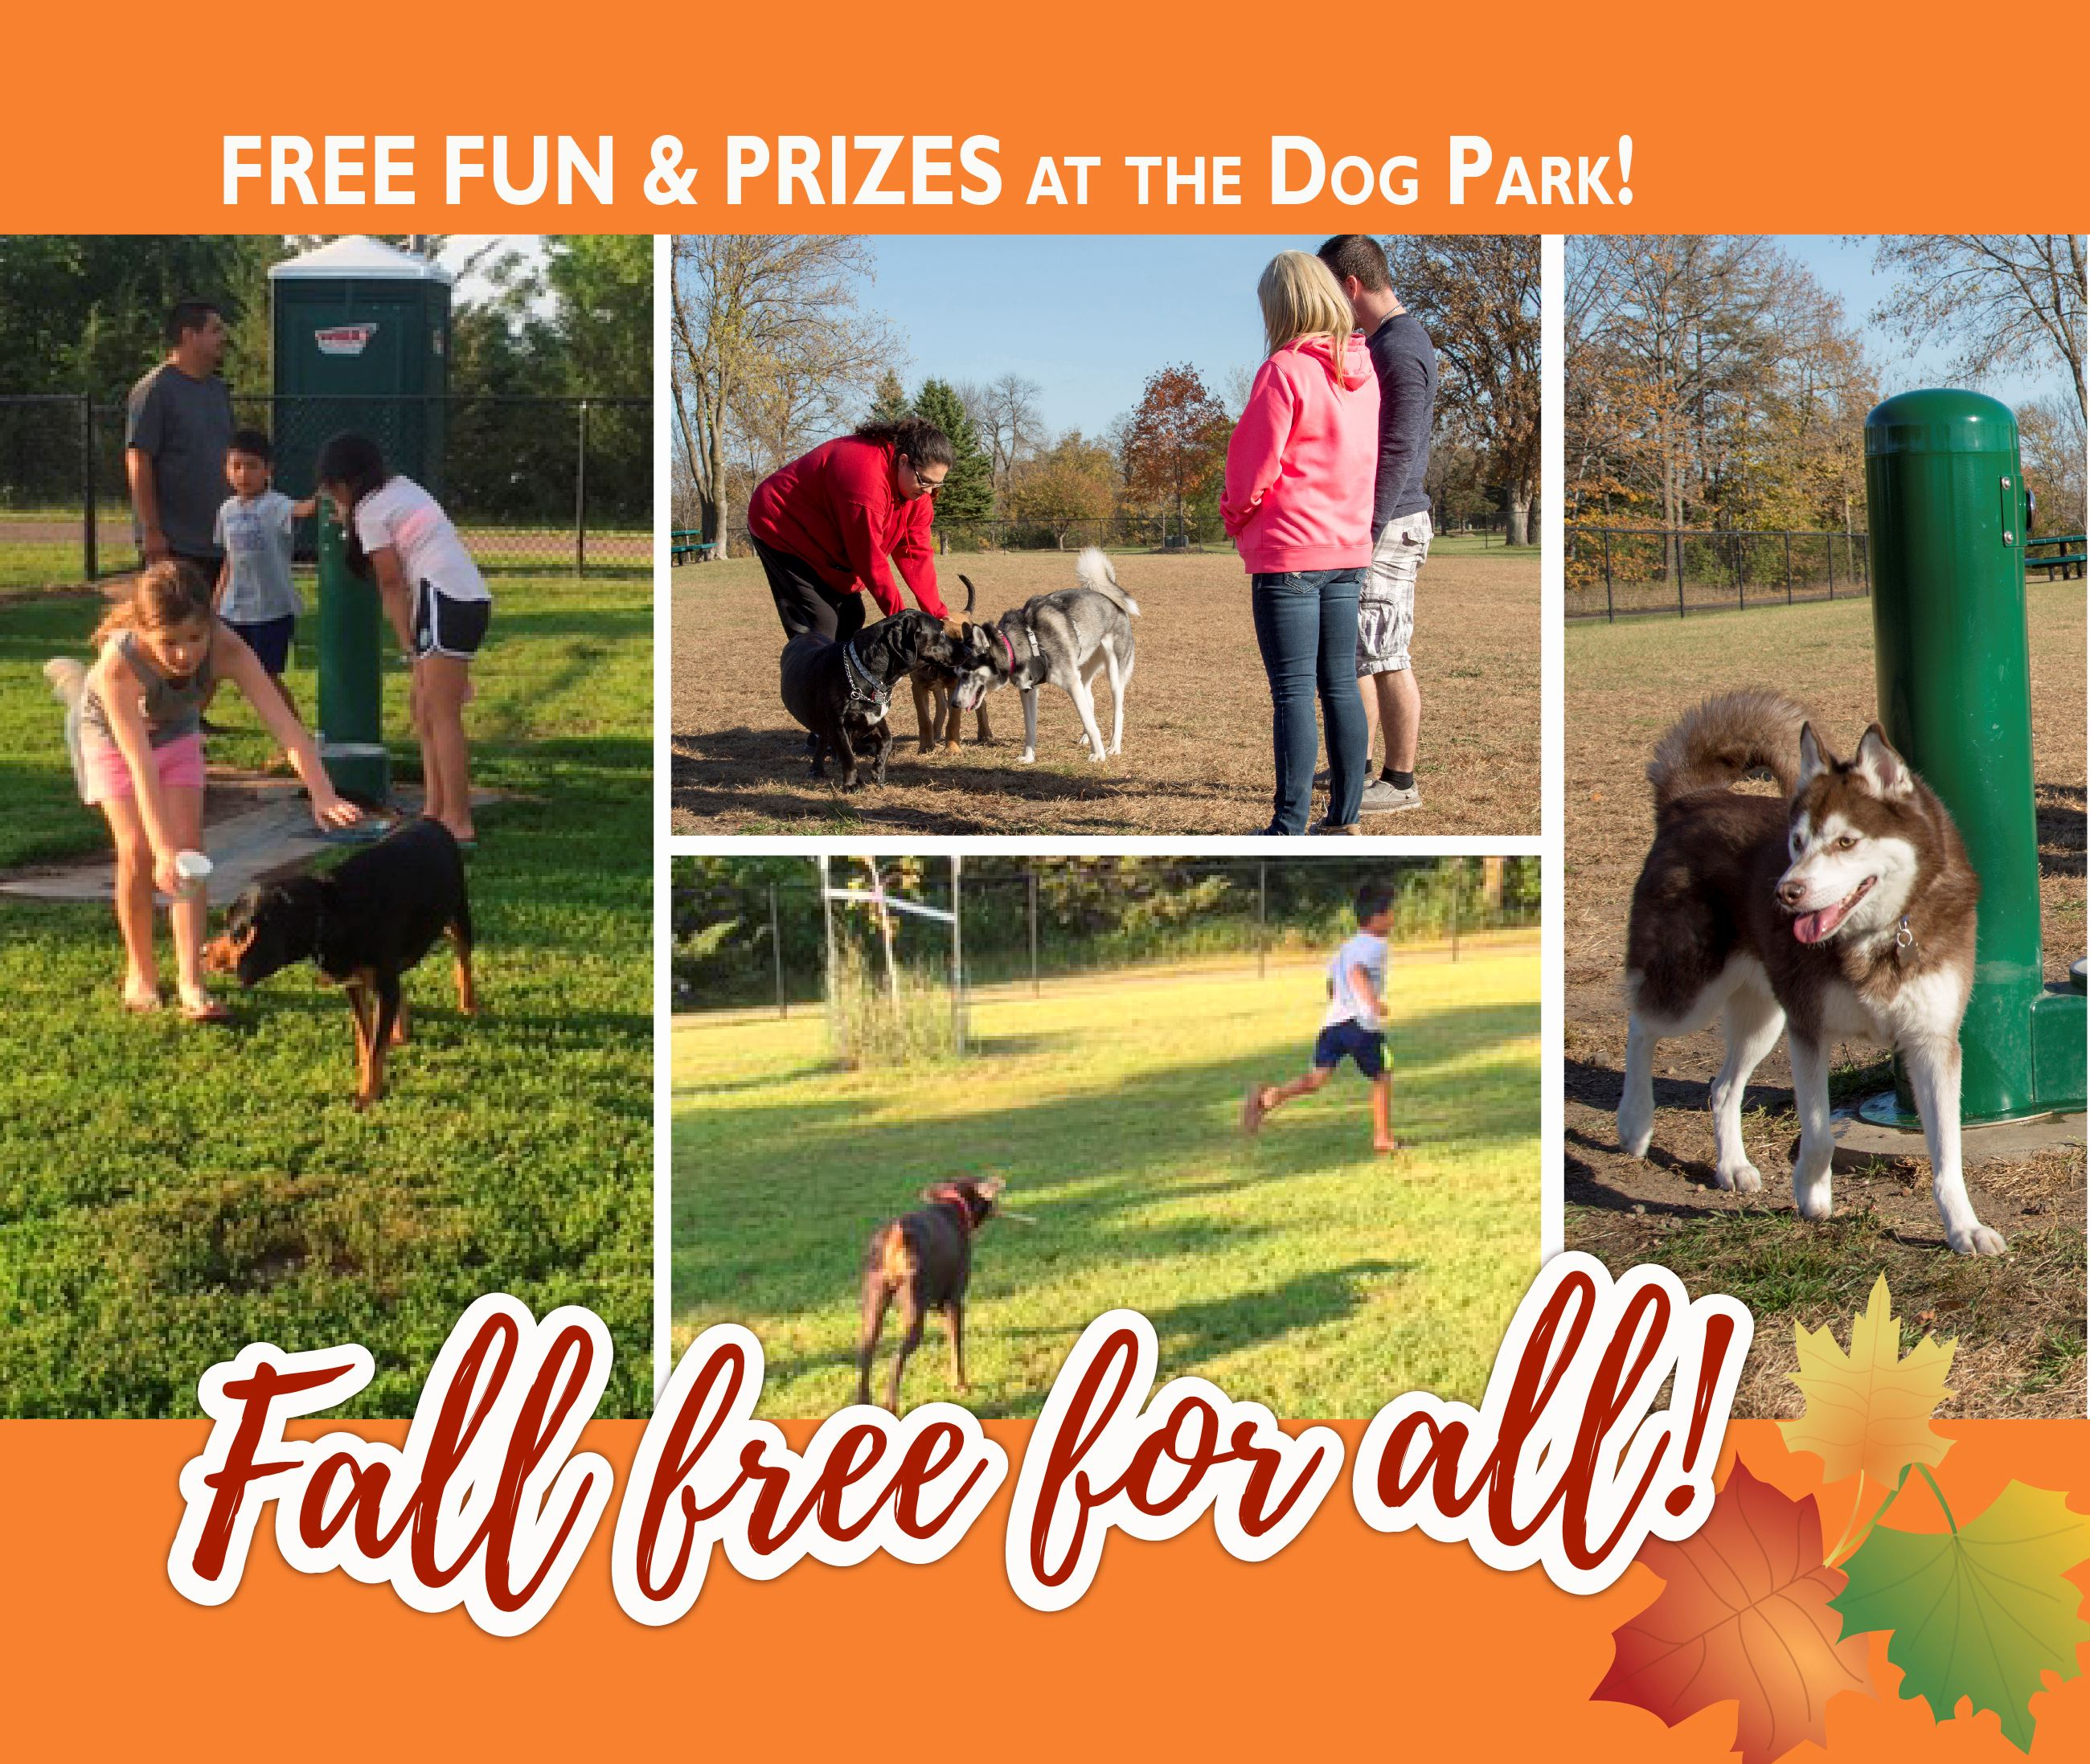 Fall Free for All - Dog Park Event